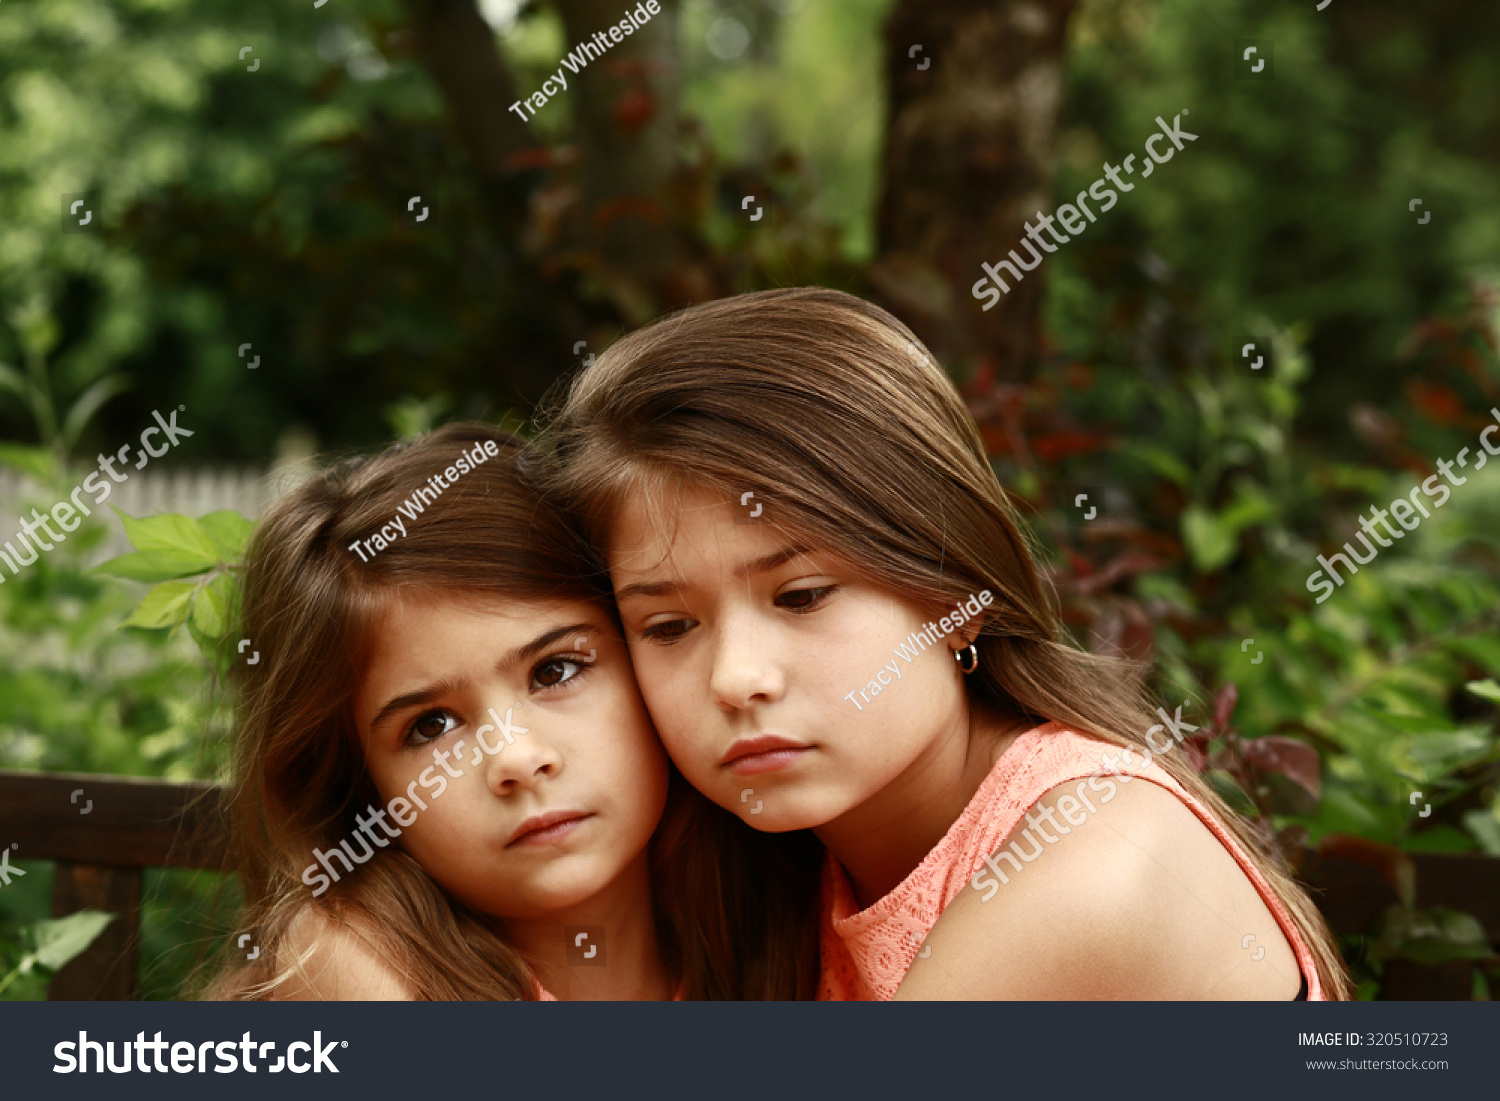 Two Beautiful Girls Heads Together Outside Stock Photo ...